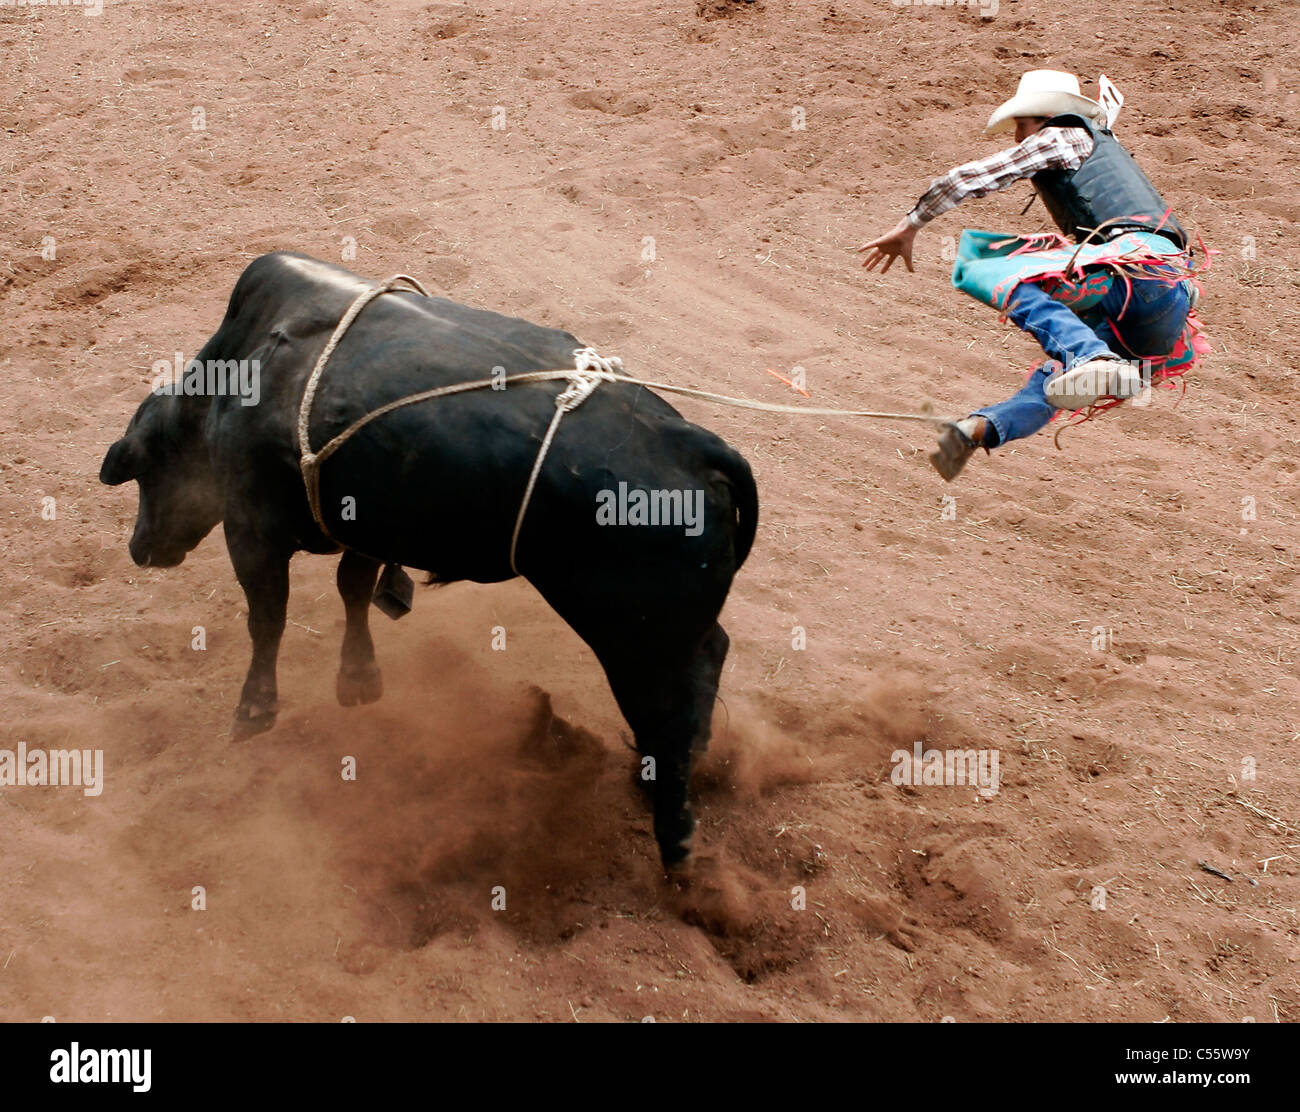 Competitor in the bull riding event at the Annual Indian Rodeo held in Mescalero, New Mexico. - Stock Image